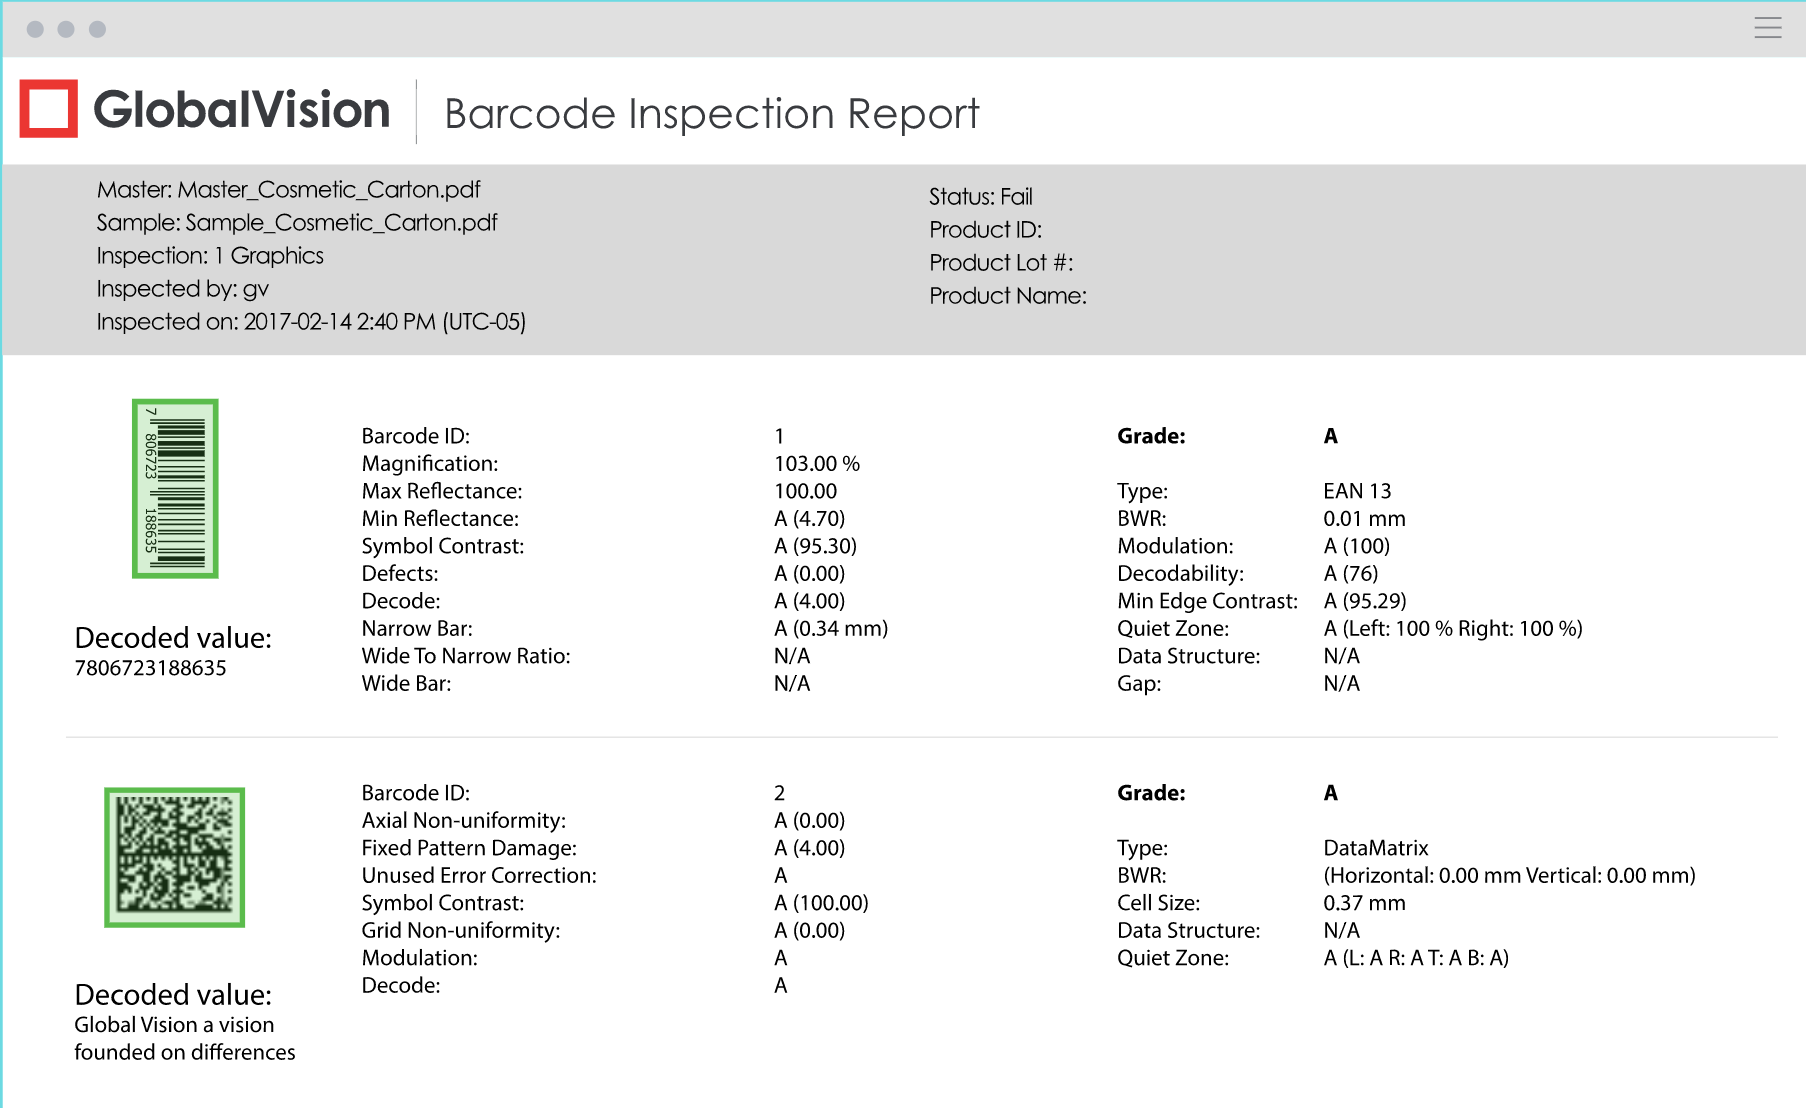 Barcode inspection report